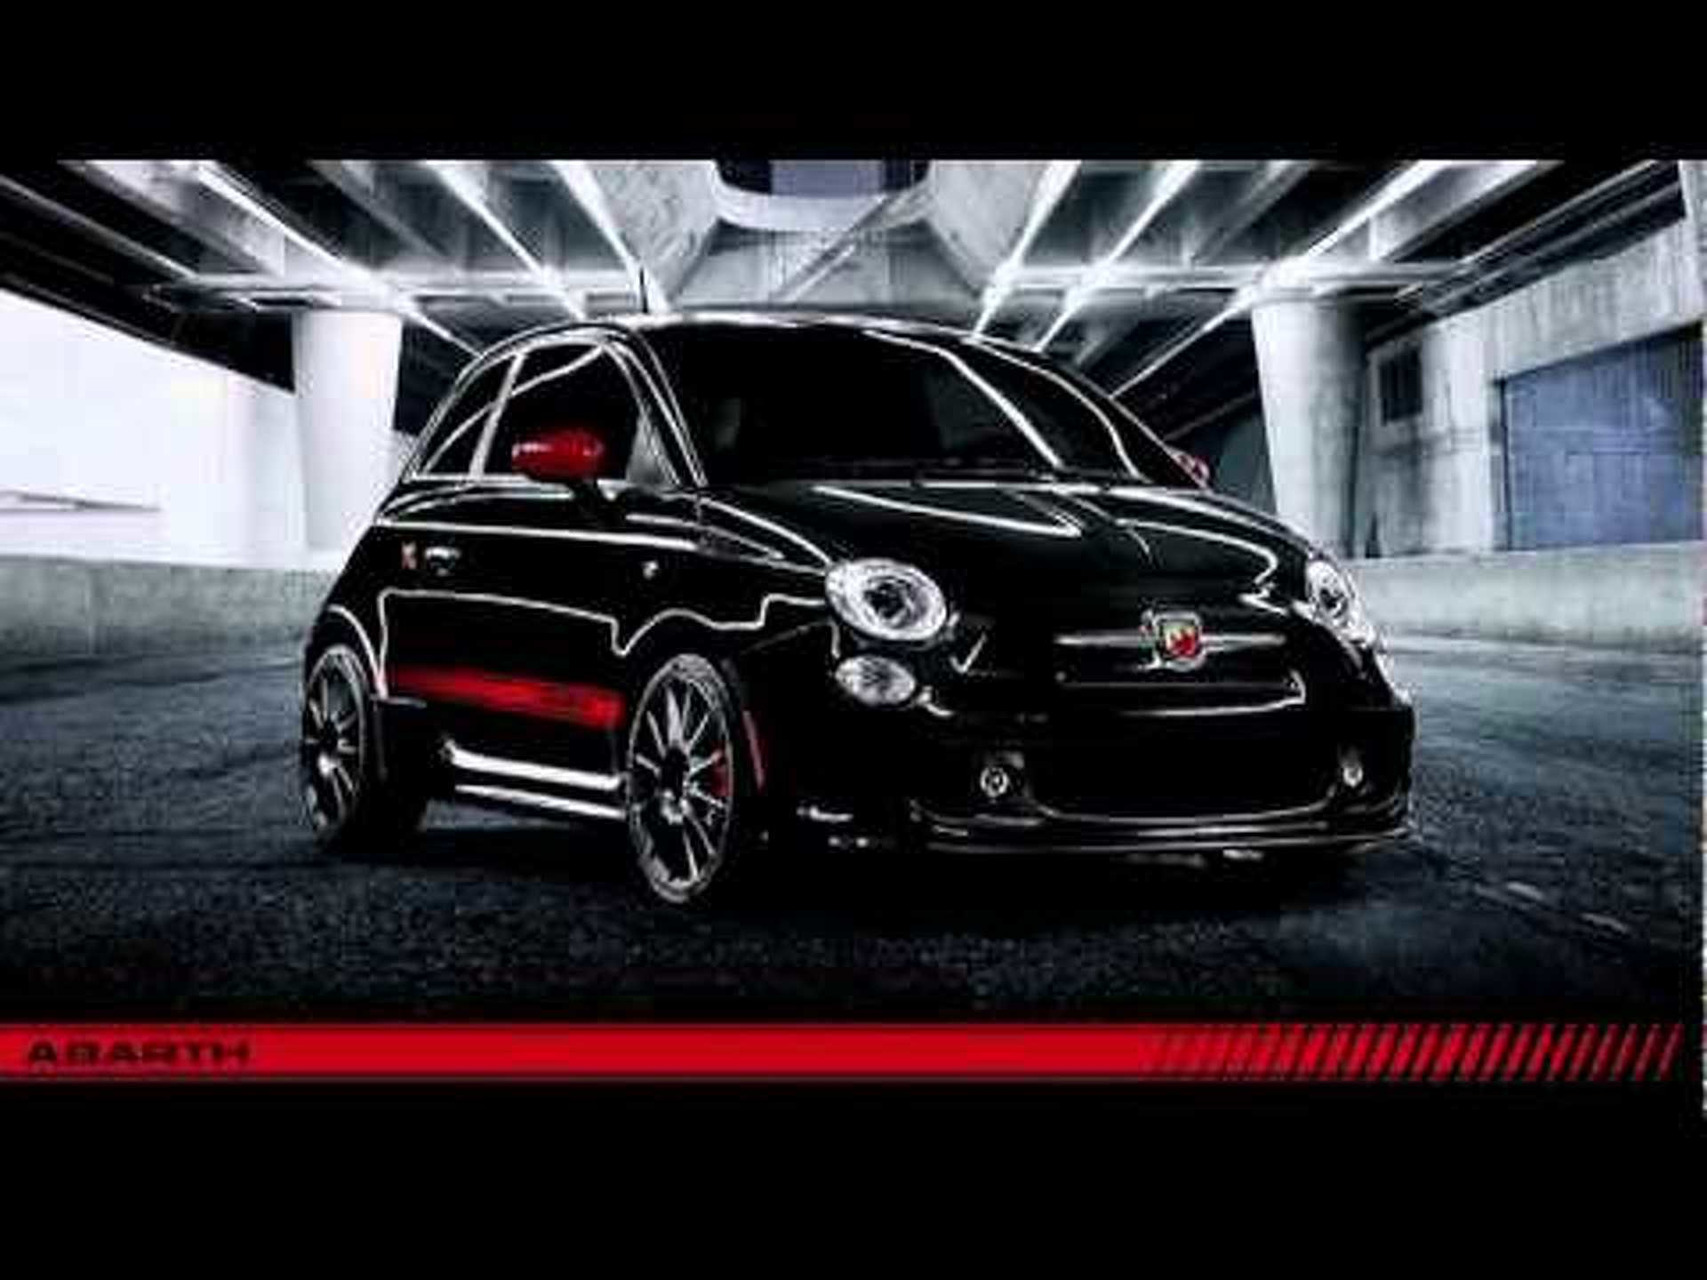 2012 Fiat 500 Abarth Reveal at the 2011 LA Auto Show